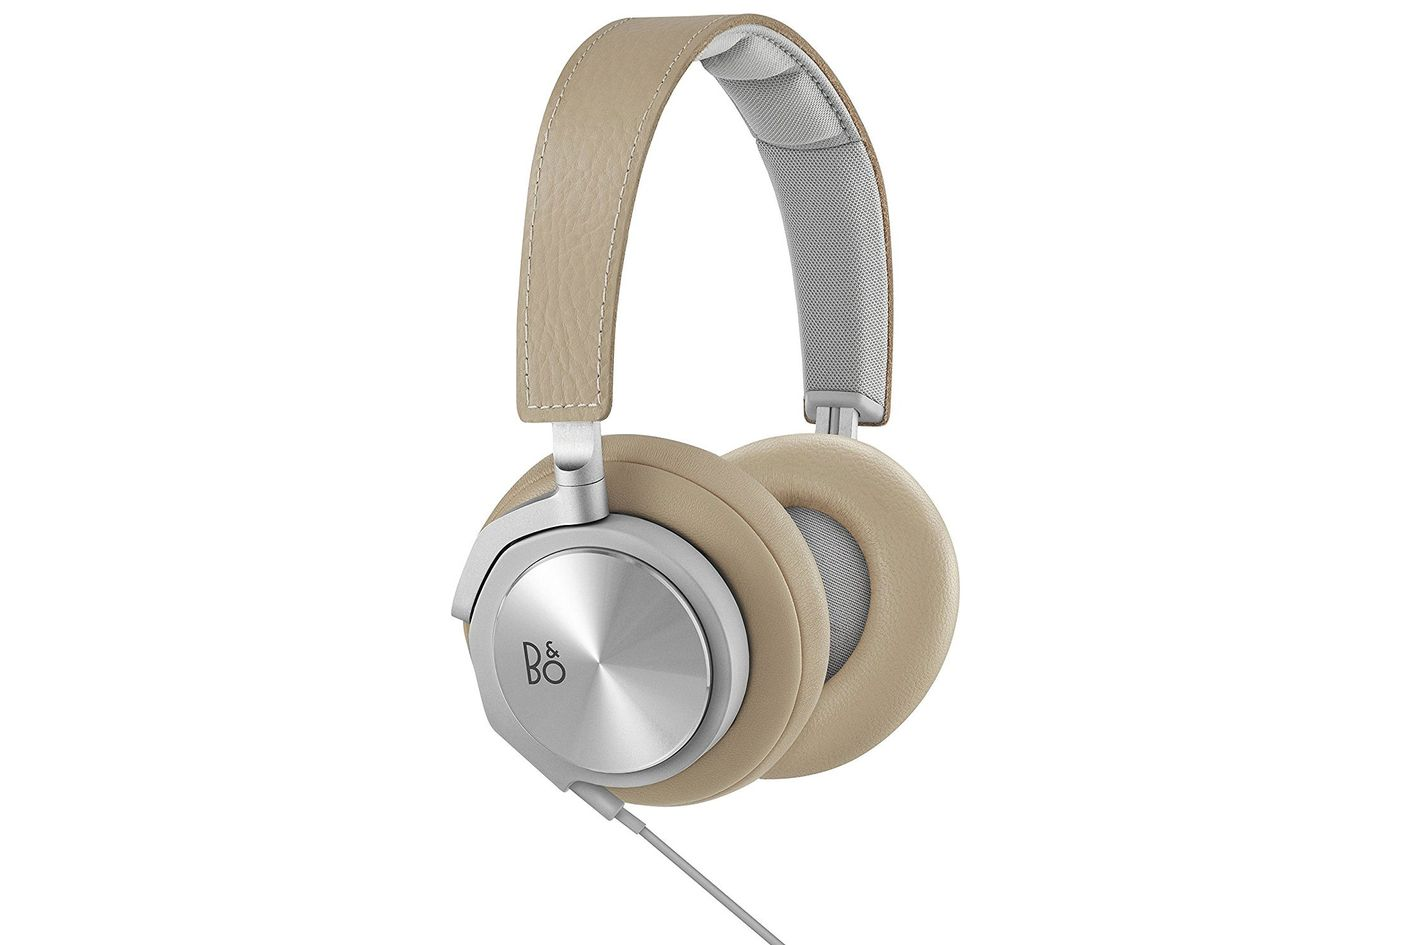 B&O PLAY by Bang & Olufsen Beoplay H6 Over-Ear Headphones